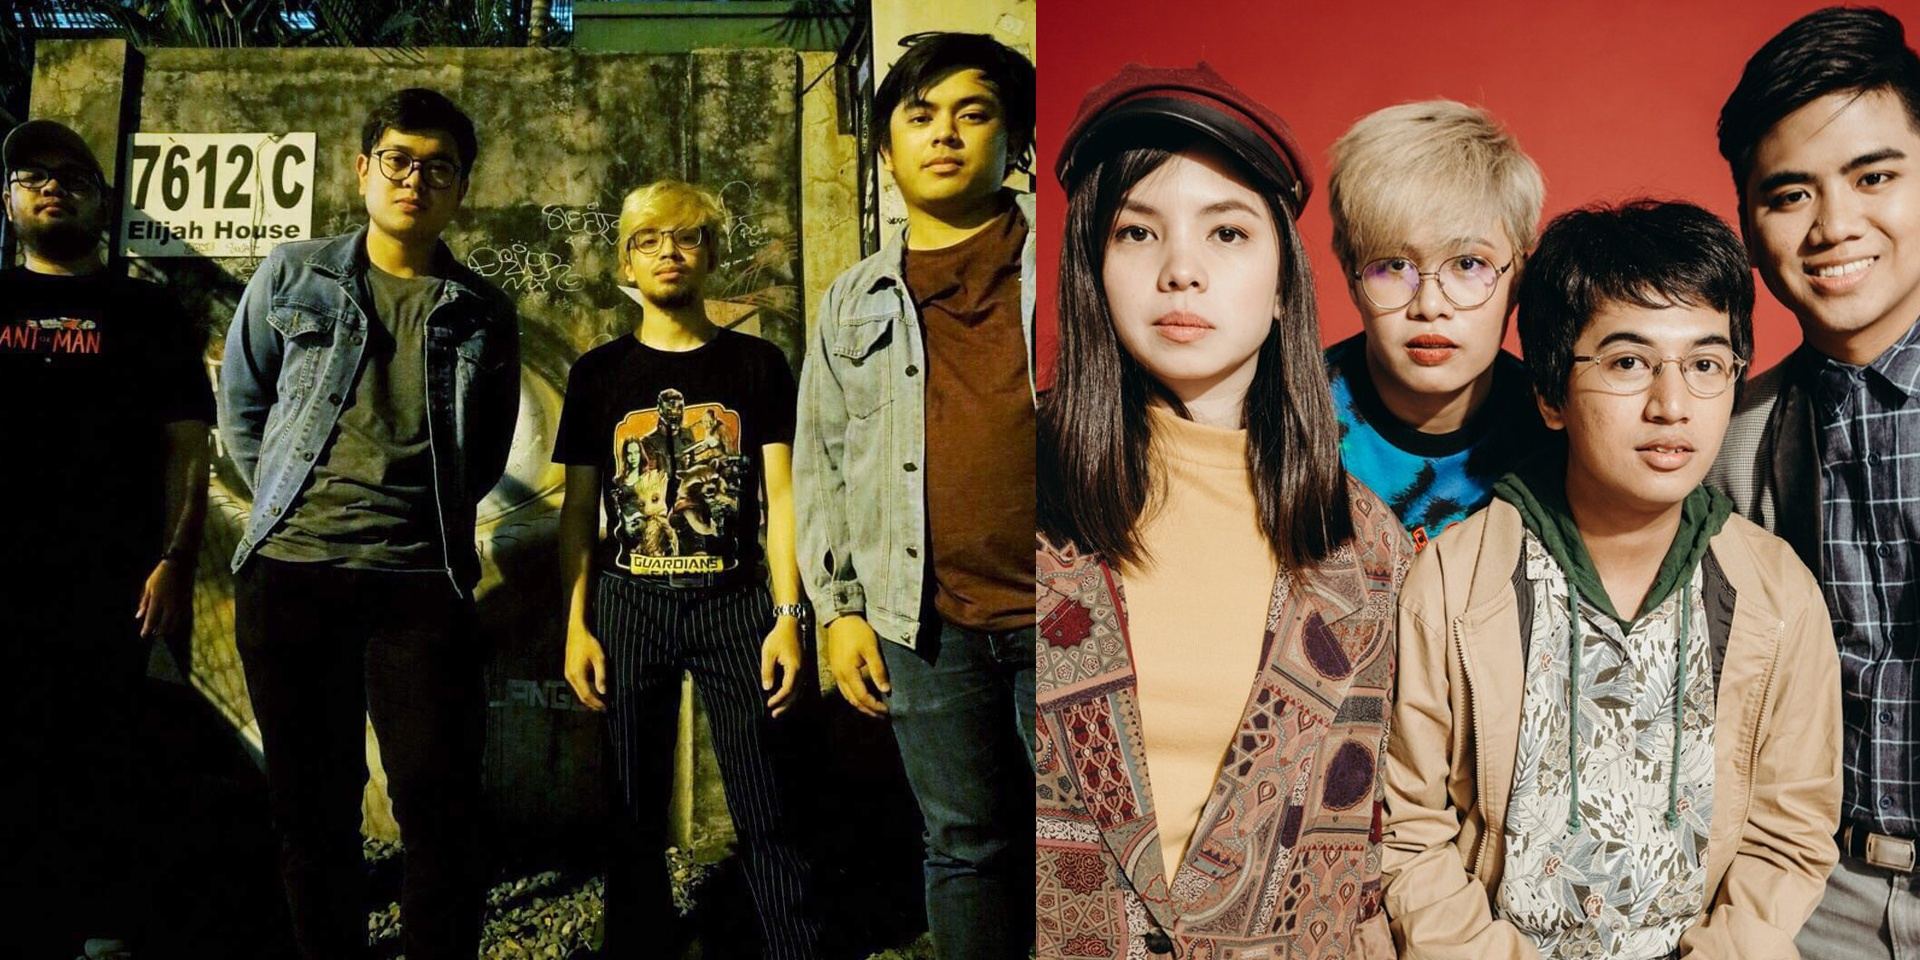 JCBX and Oh, Flamingo! to perform at  Asia Pacific Music Festival in Hong Kong